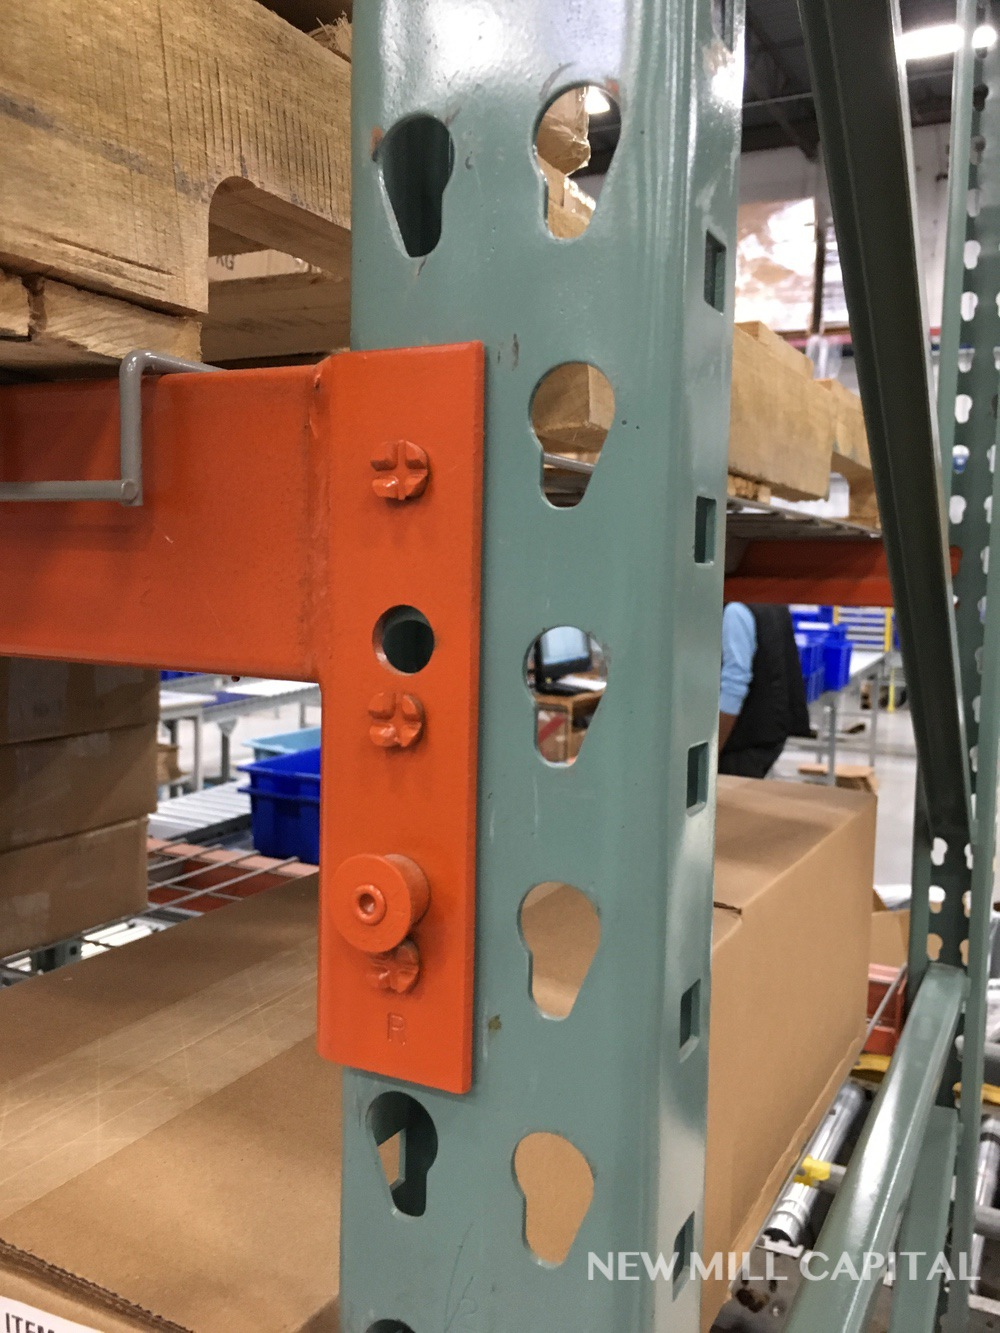 Lot 12 - Interlake Teardrop Pallet Rack, (12) Uprights (3in x 1.625in Columns, 42i | Rig: See Lot Description